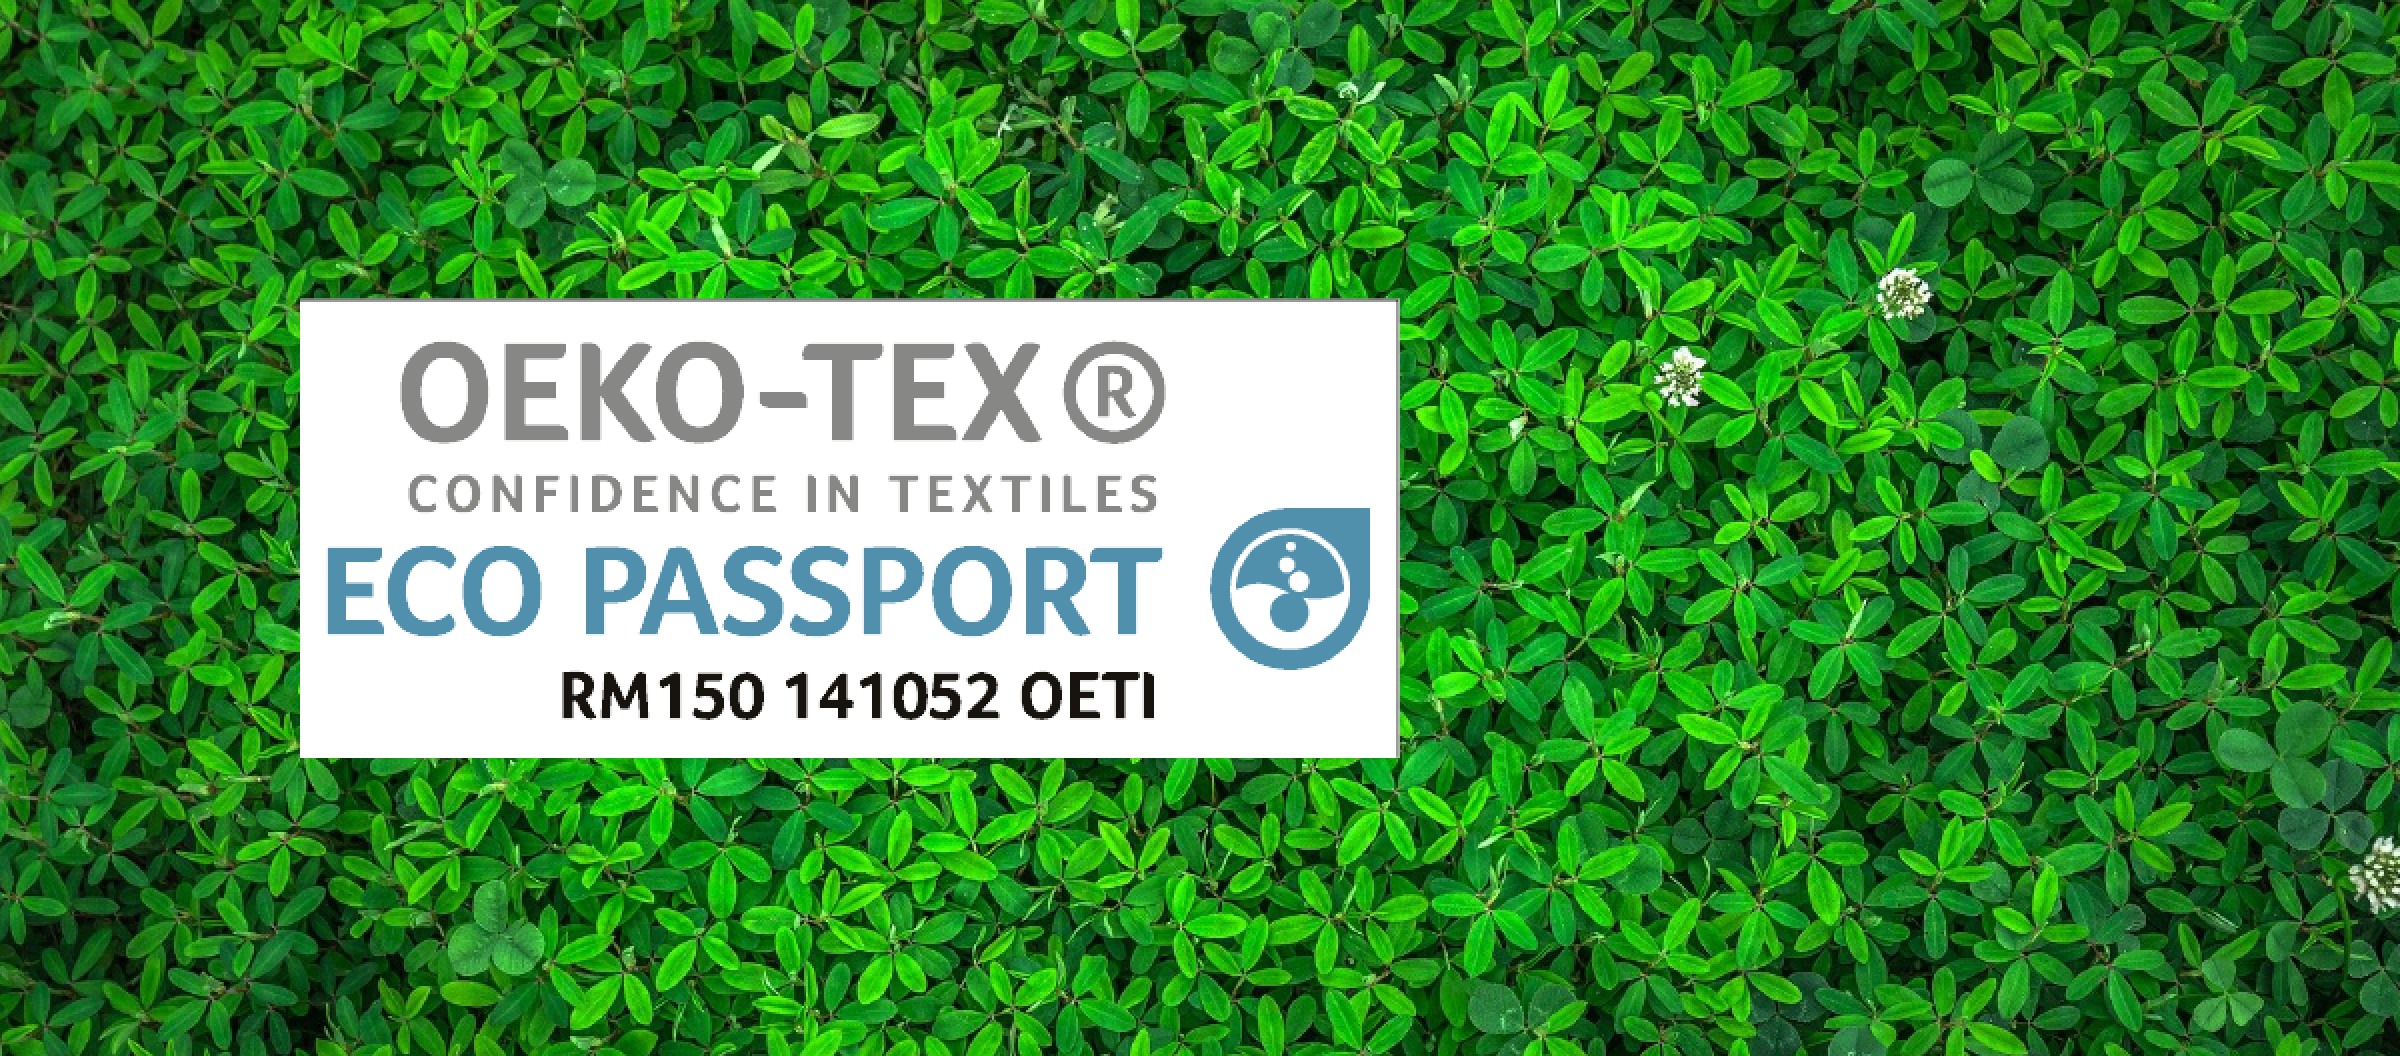 Eco-Passport Oeko-Tex